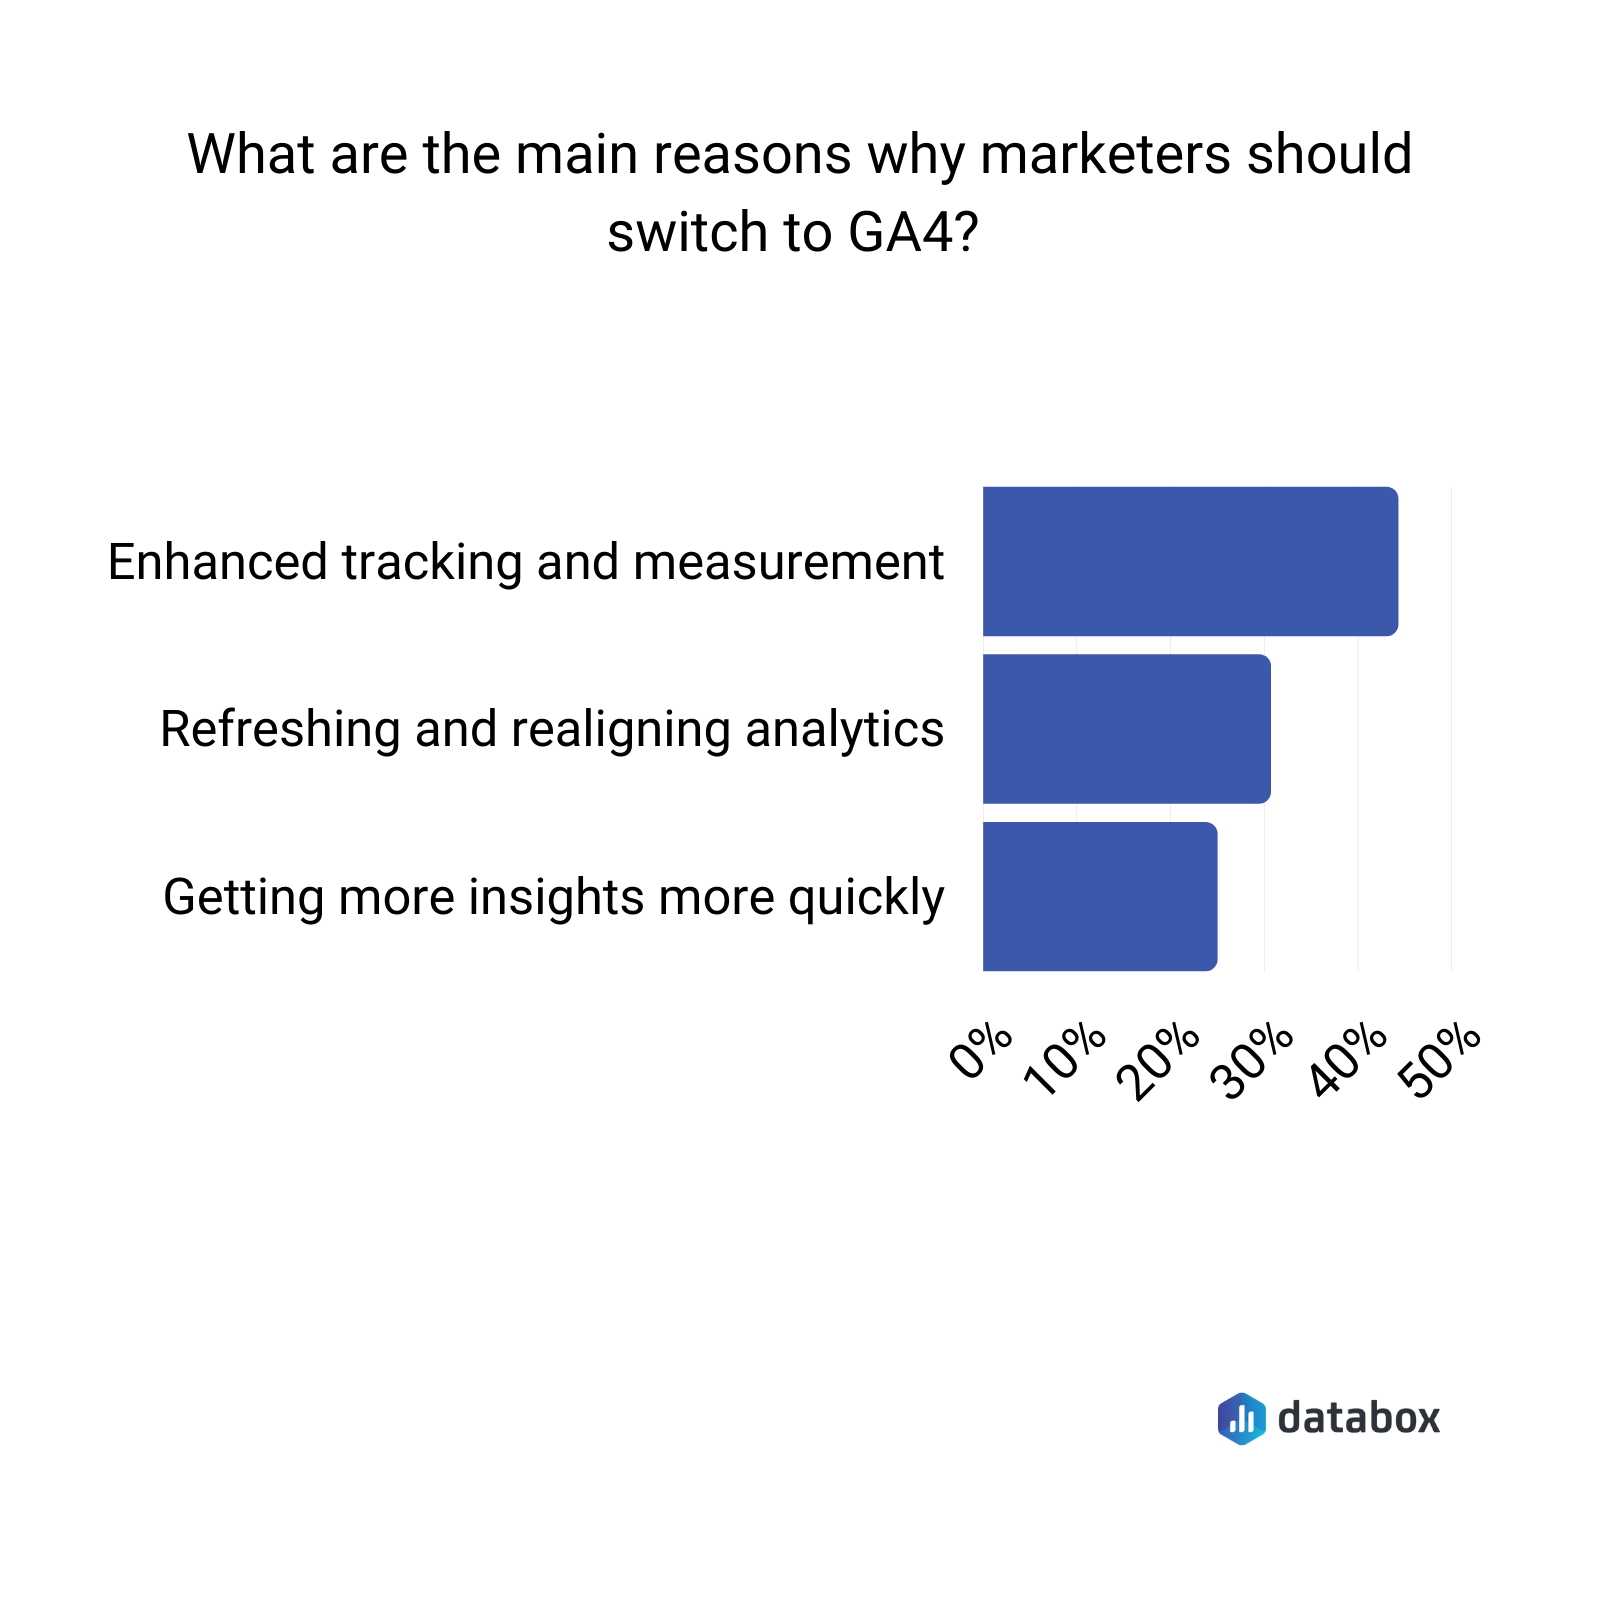 Top reasons for upgrading to Google Analytics 4